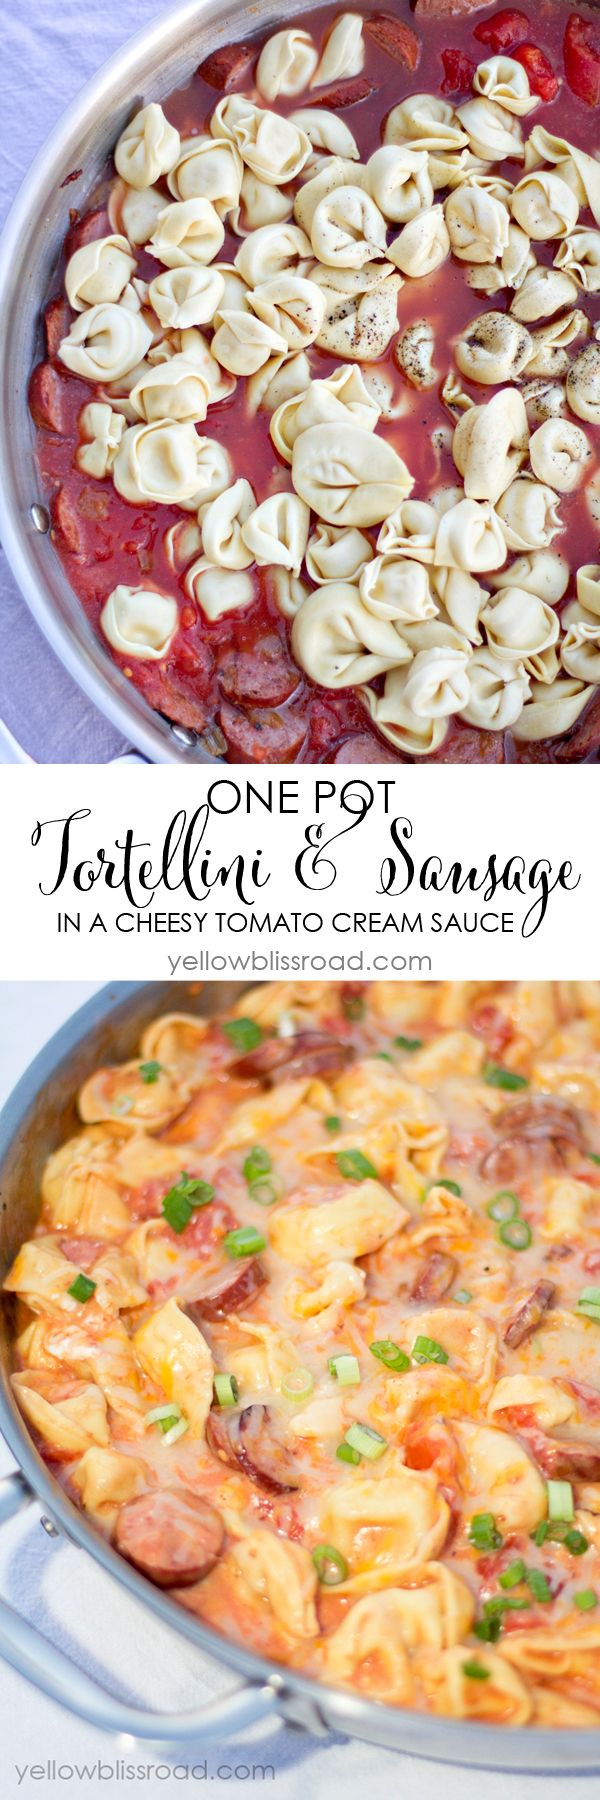 This one was a winner with 5 out of 6 kids! Original post: One Pot Tortellini and Sausage in a Cheesy Tomato Cream Sauce - A delicious meal that's ready in 30 minutes!